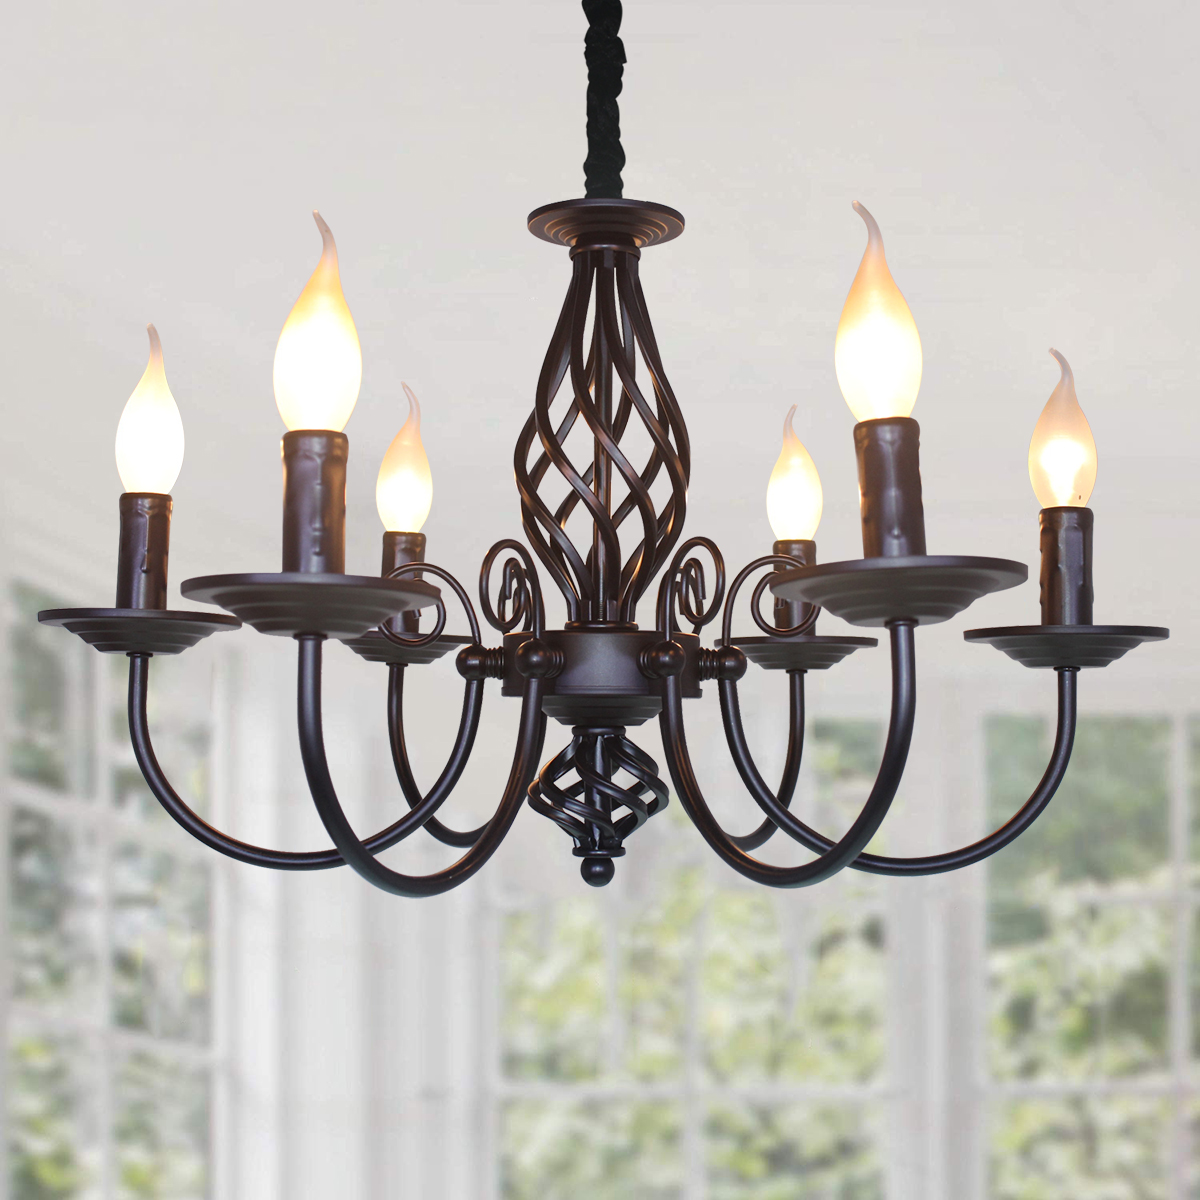 french country chandelier amazon hot selling 6 lights vintage candle chandelier farmhouse pendant light fixture buy vintage chandelier for kitchen